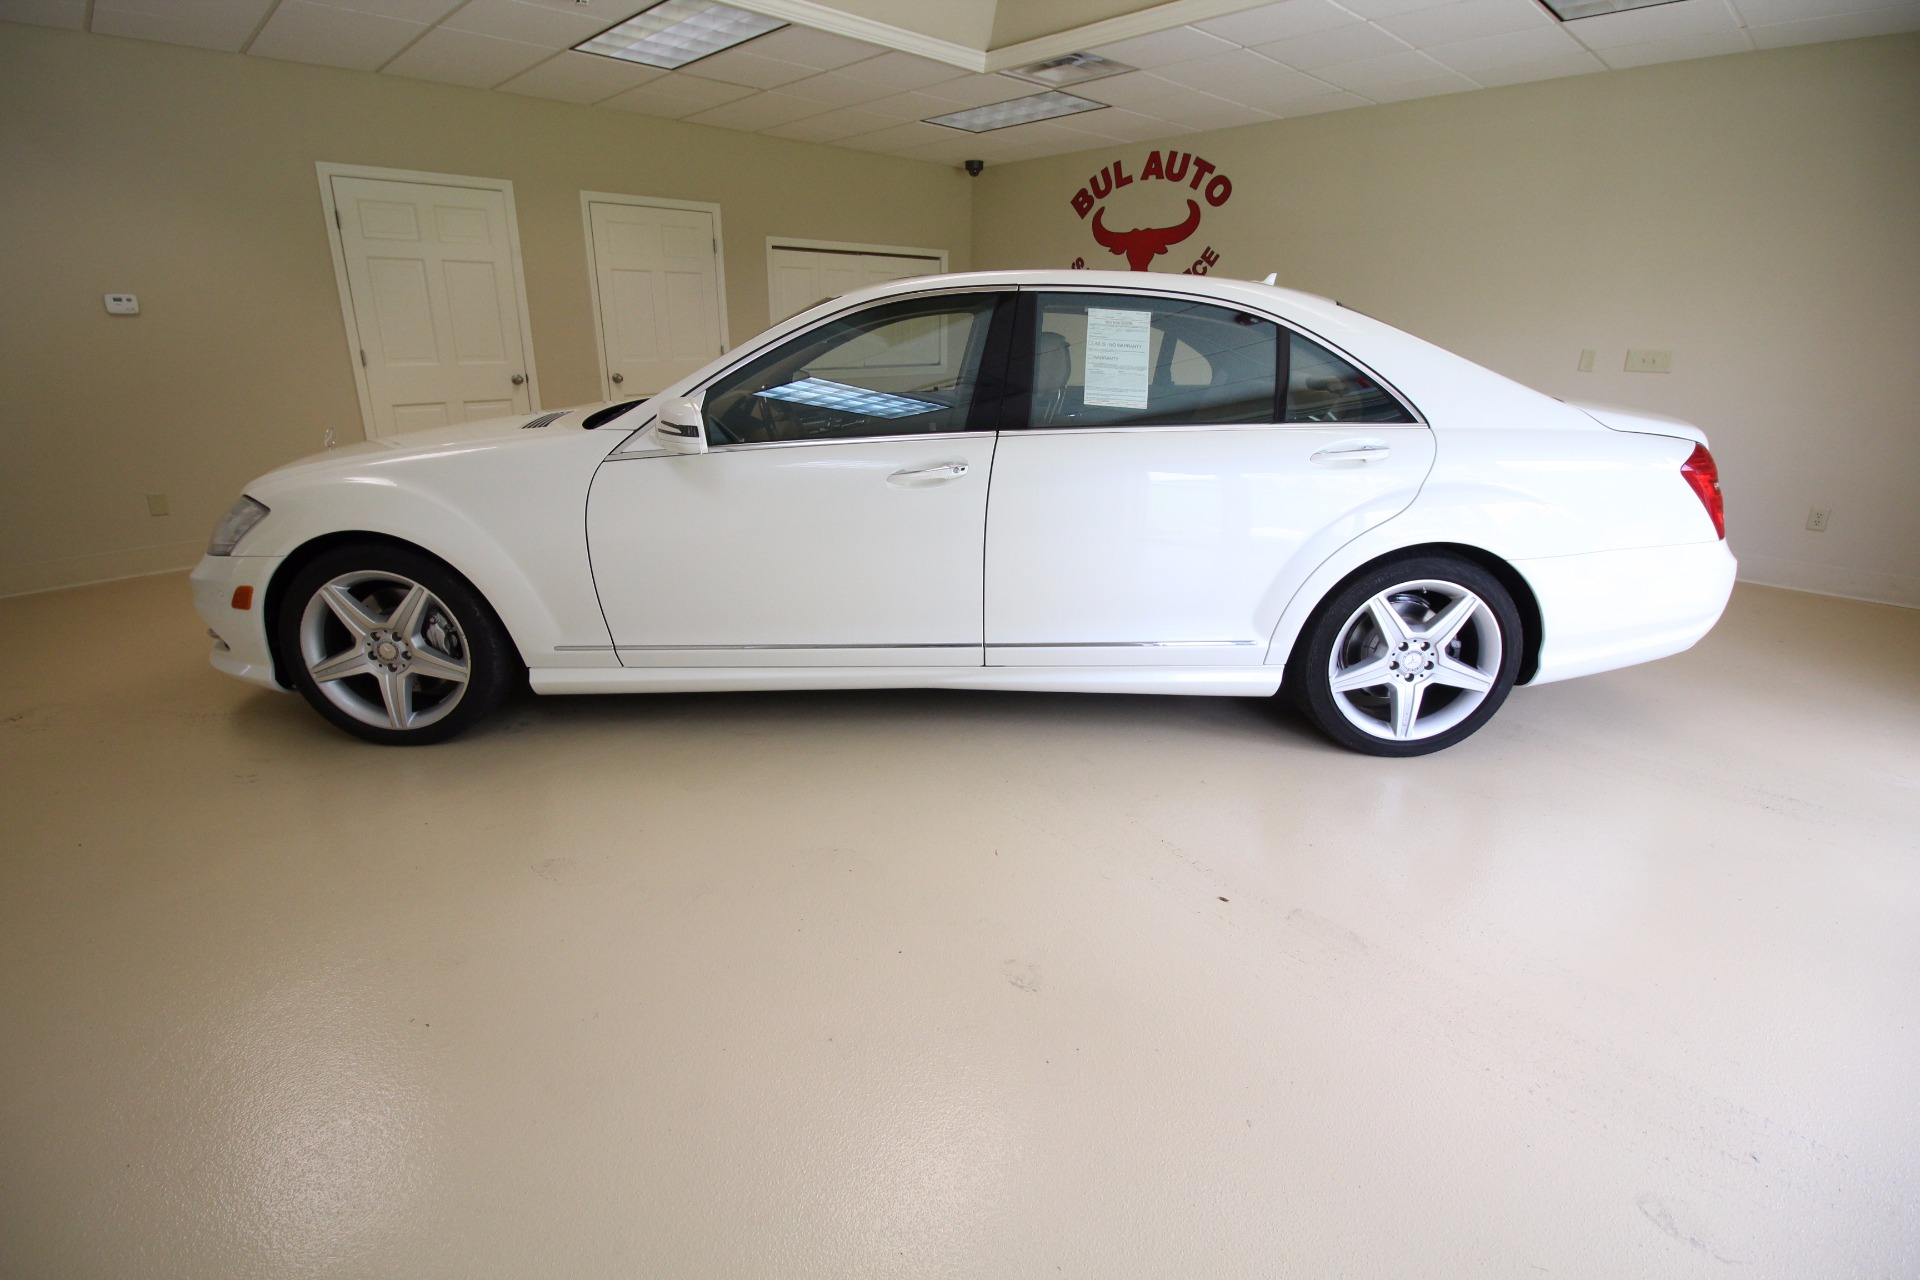 2011 Mercedes-Benz S-Class S550 4-MATIC Stock # 17115 for sale near